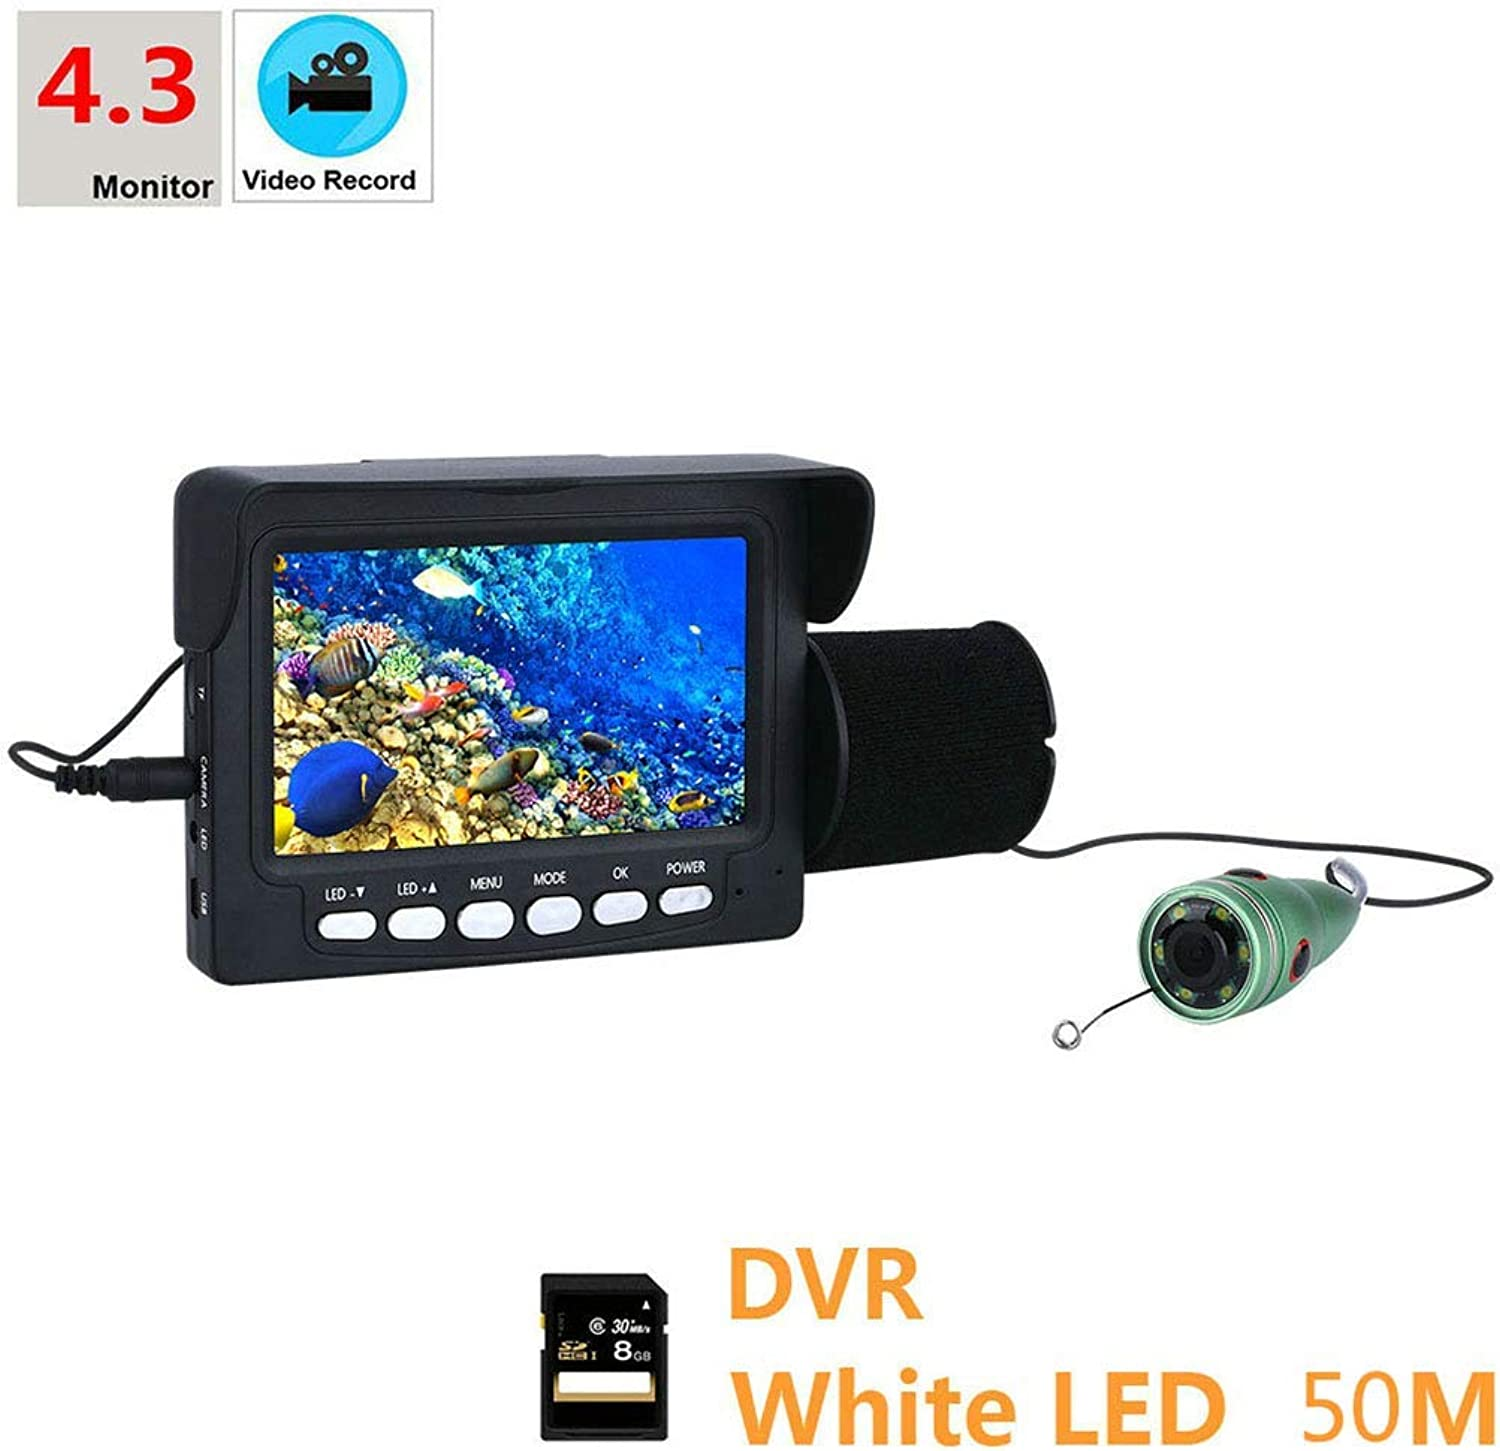 Fish finder DVR-Rekorder mit Sensor,4.3 Inch 1000tvl Unterwasserfischerei HD Video Camera Kit mit 8G TF-Karte, 6 PCS Weiß Light LED EIS, See,50